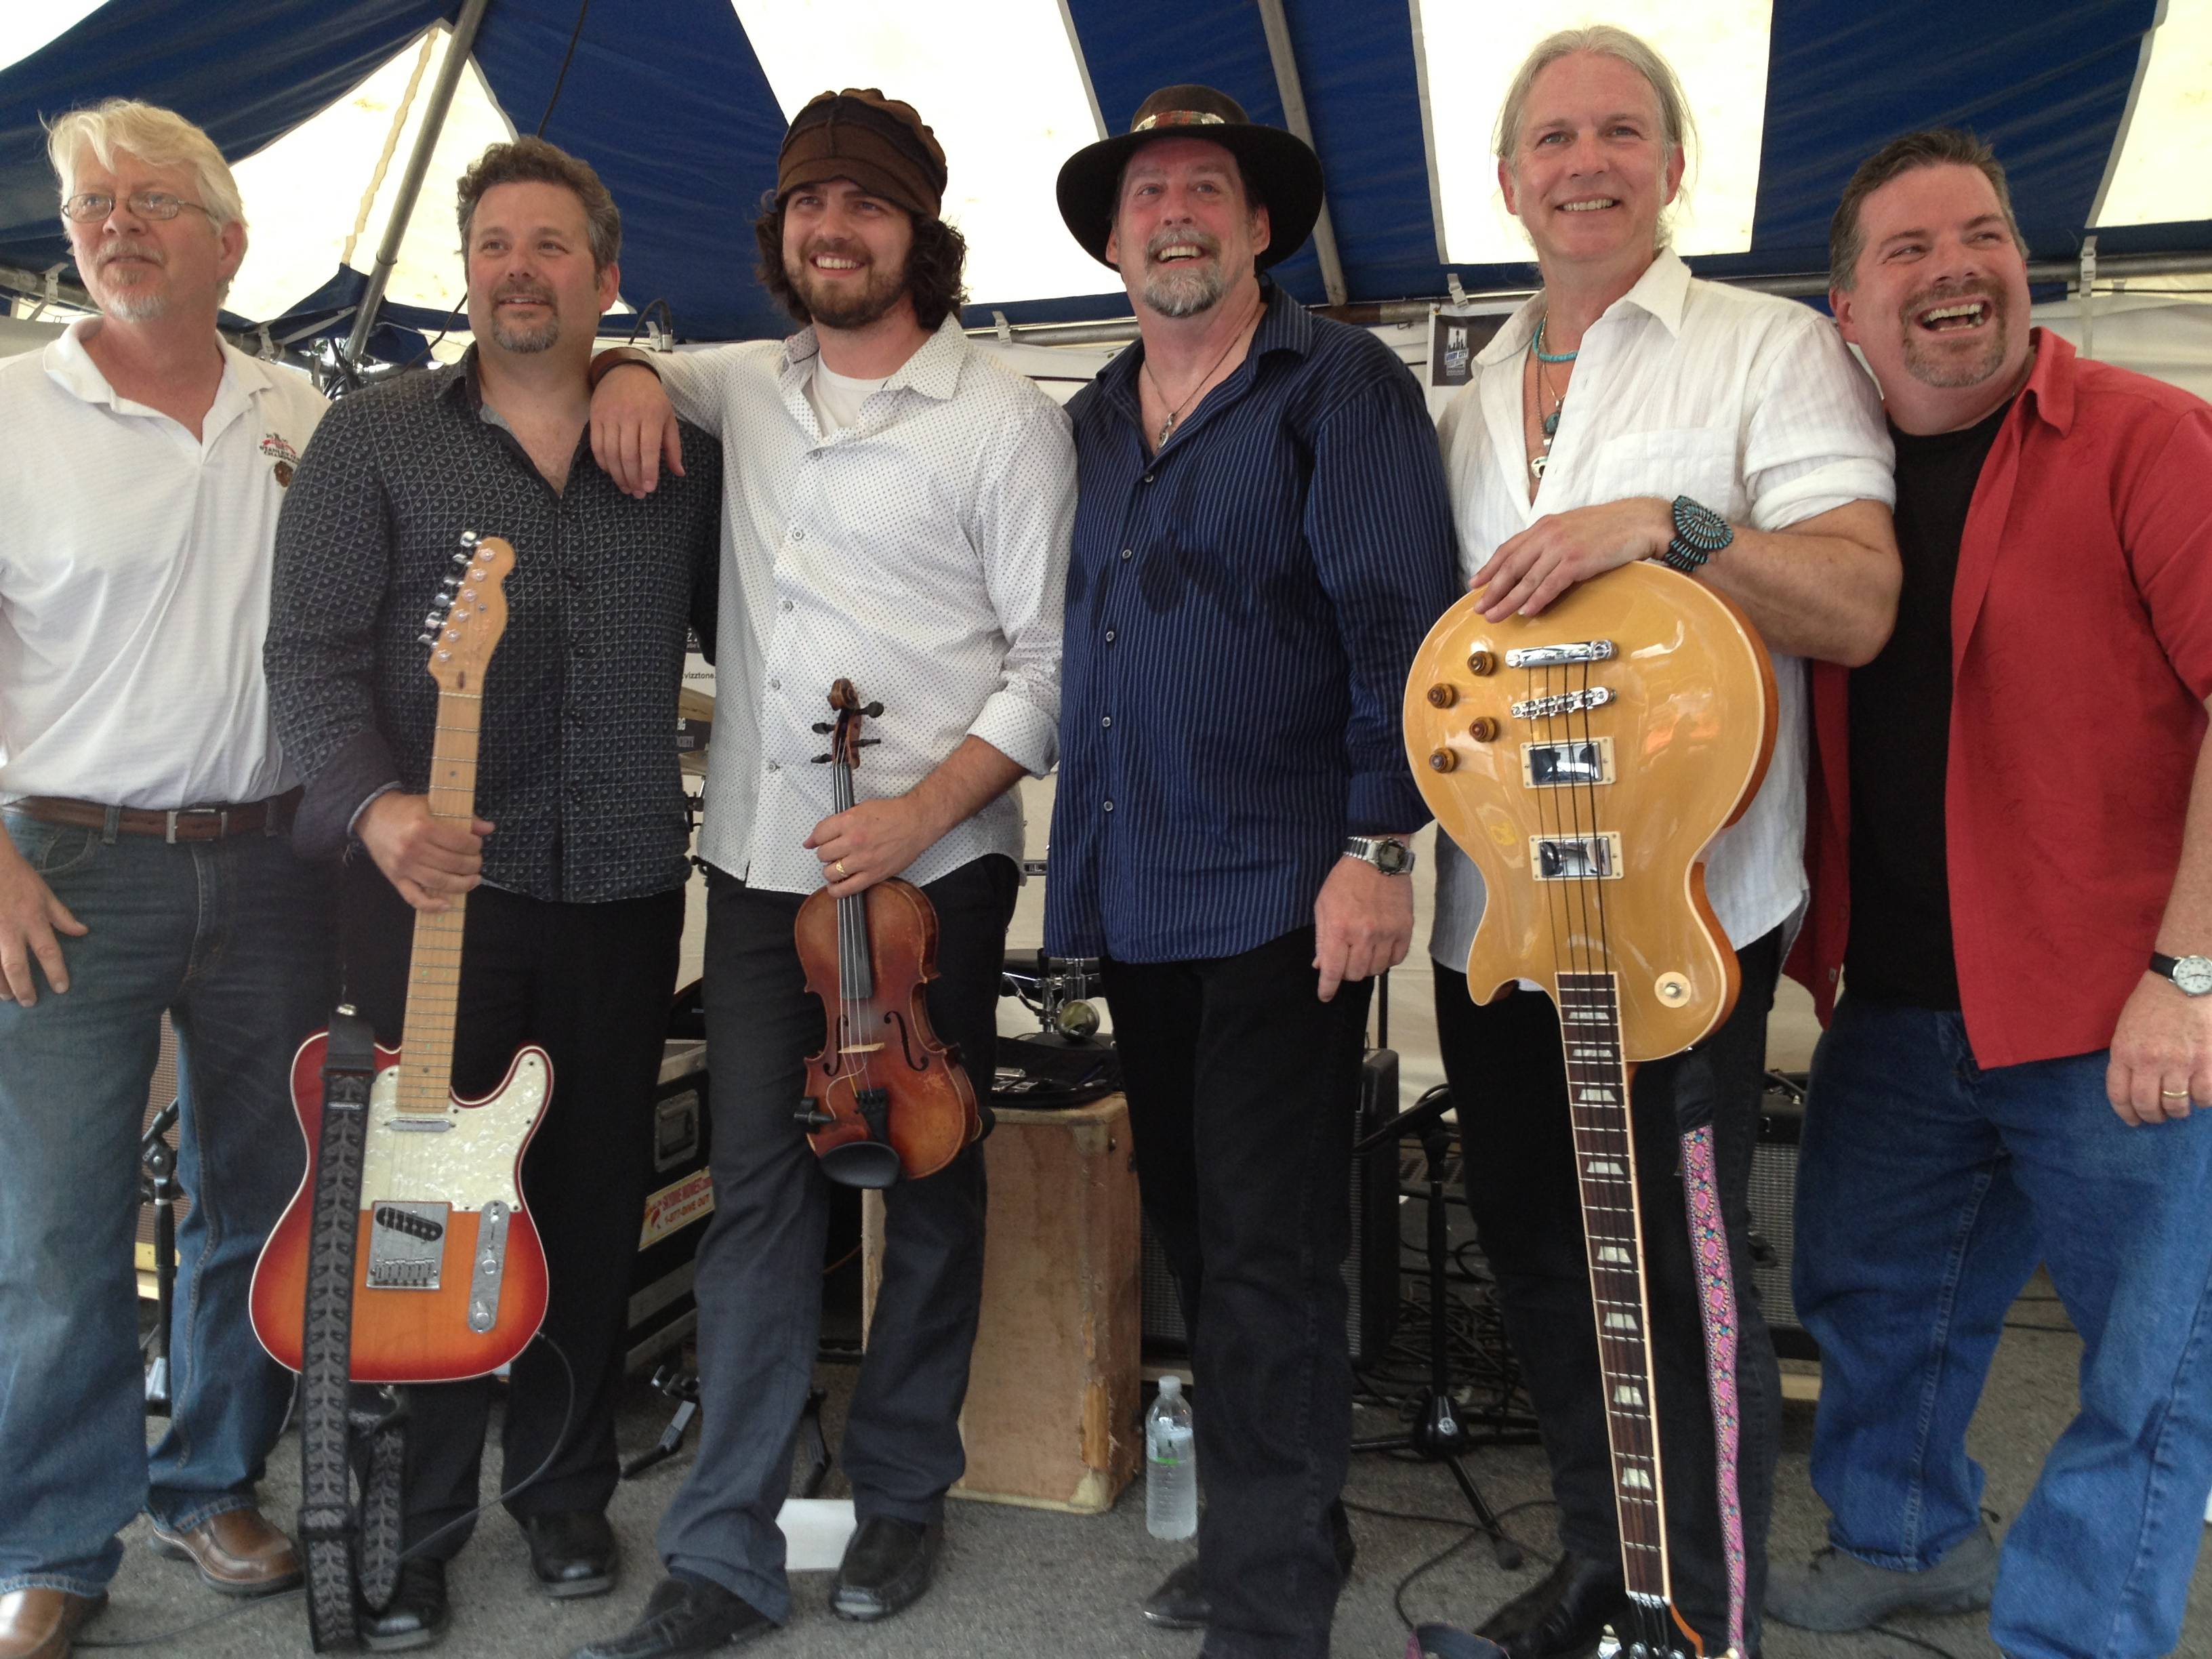 Photo taken at Chicago Blues Fest 2013. From left to right, Pete Kruse-drums, Don Laferty-guitar, Andy Ohlrich-fiddle, Kevin Purcell-harmonica & lead vocals, Tony Root-bass, Bill LeClair-keyboards.